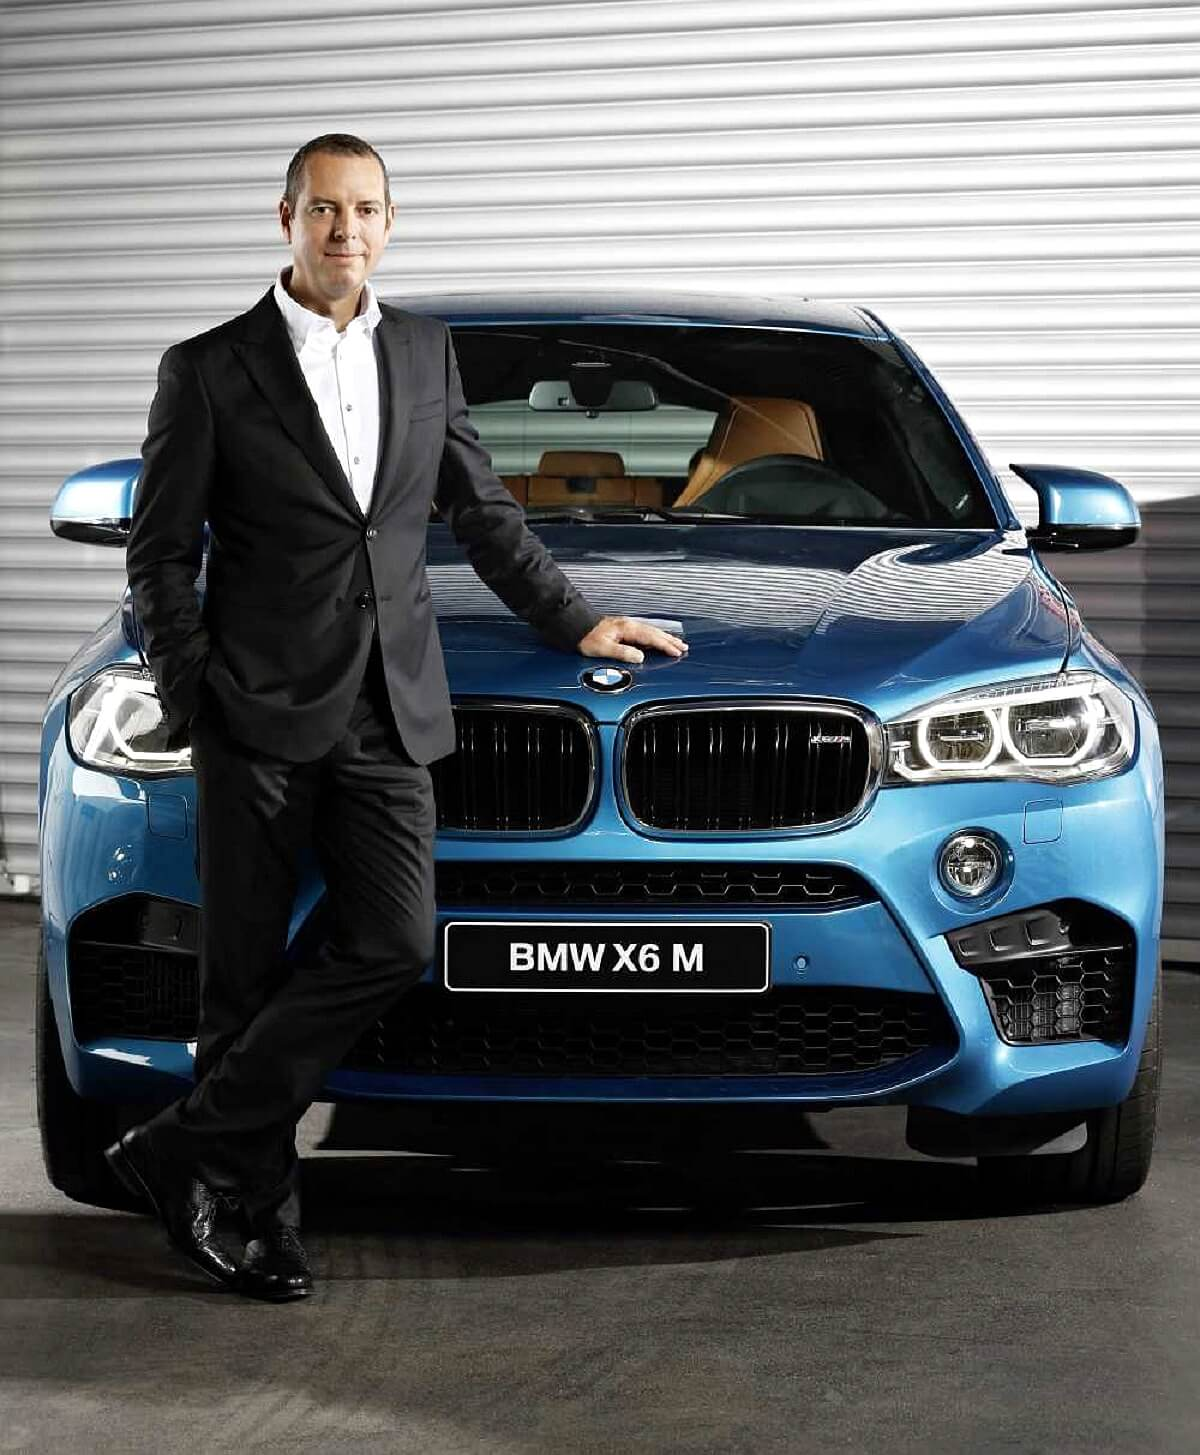 P90170169-franciscus-van-meel-chairman-of-the-board-of-management-of-bmw-m-gmbh-as-of-january-1st-2015-1000px.jpg